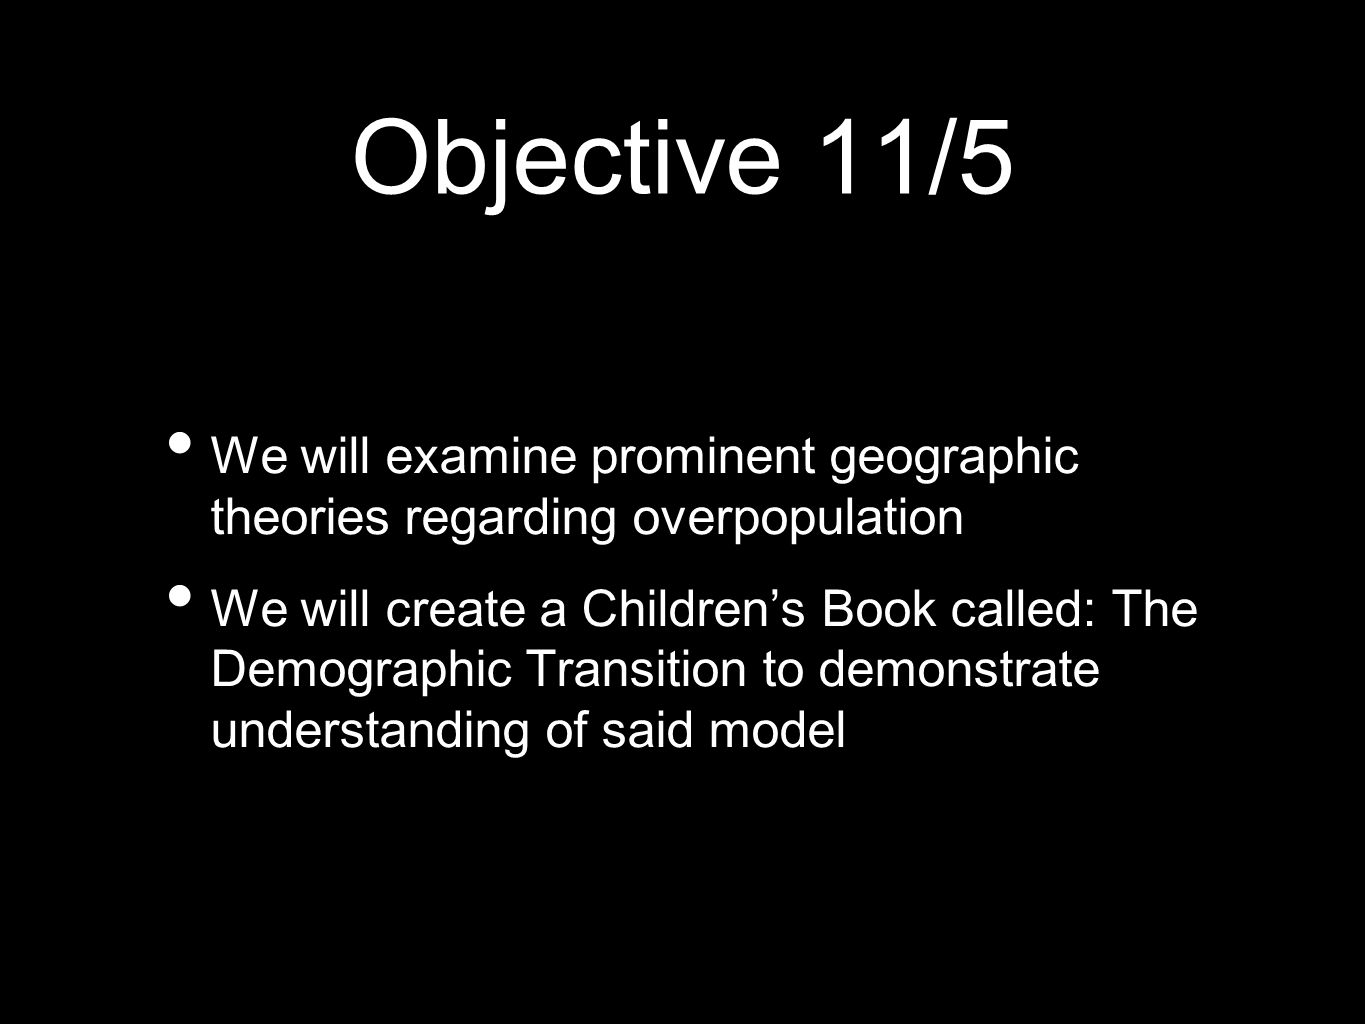 Objective 11/5 We will examine prominent geographic theories regarding overpopulation.